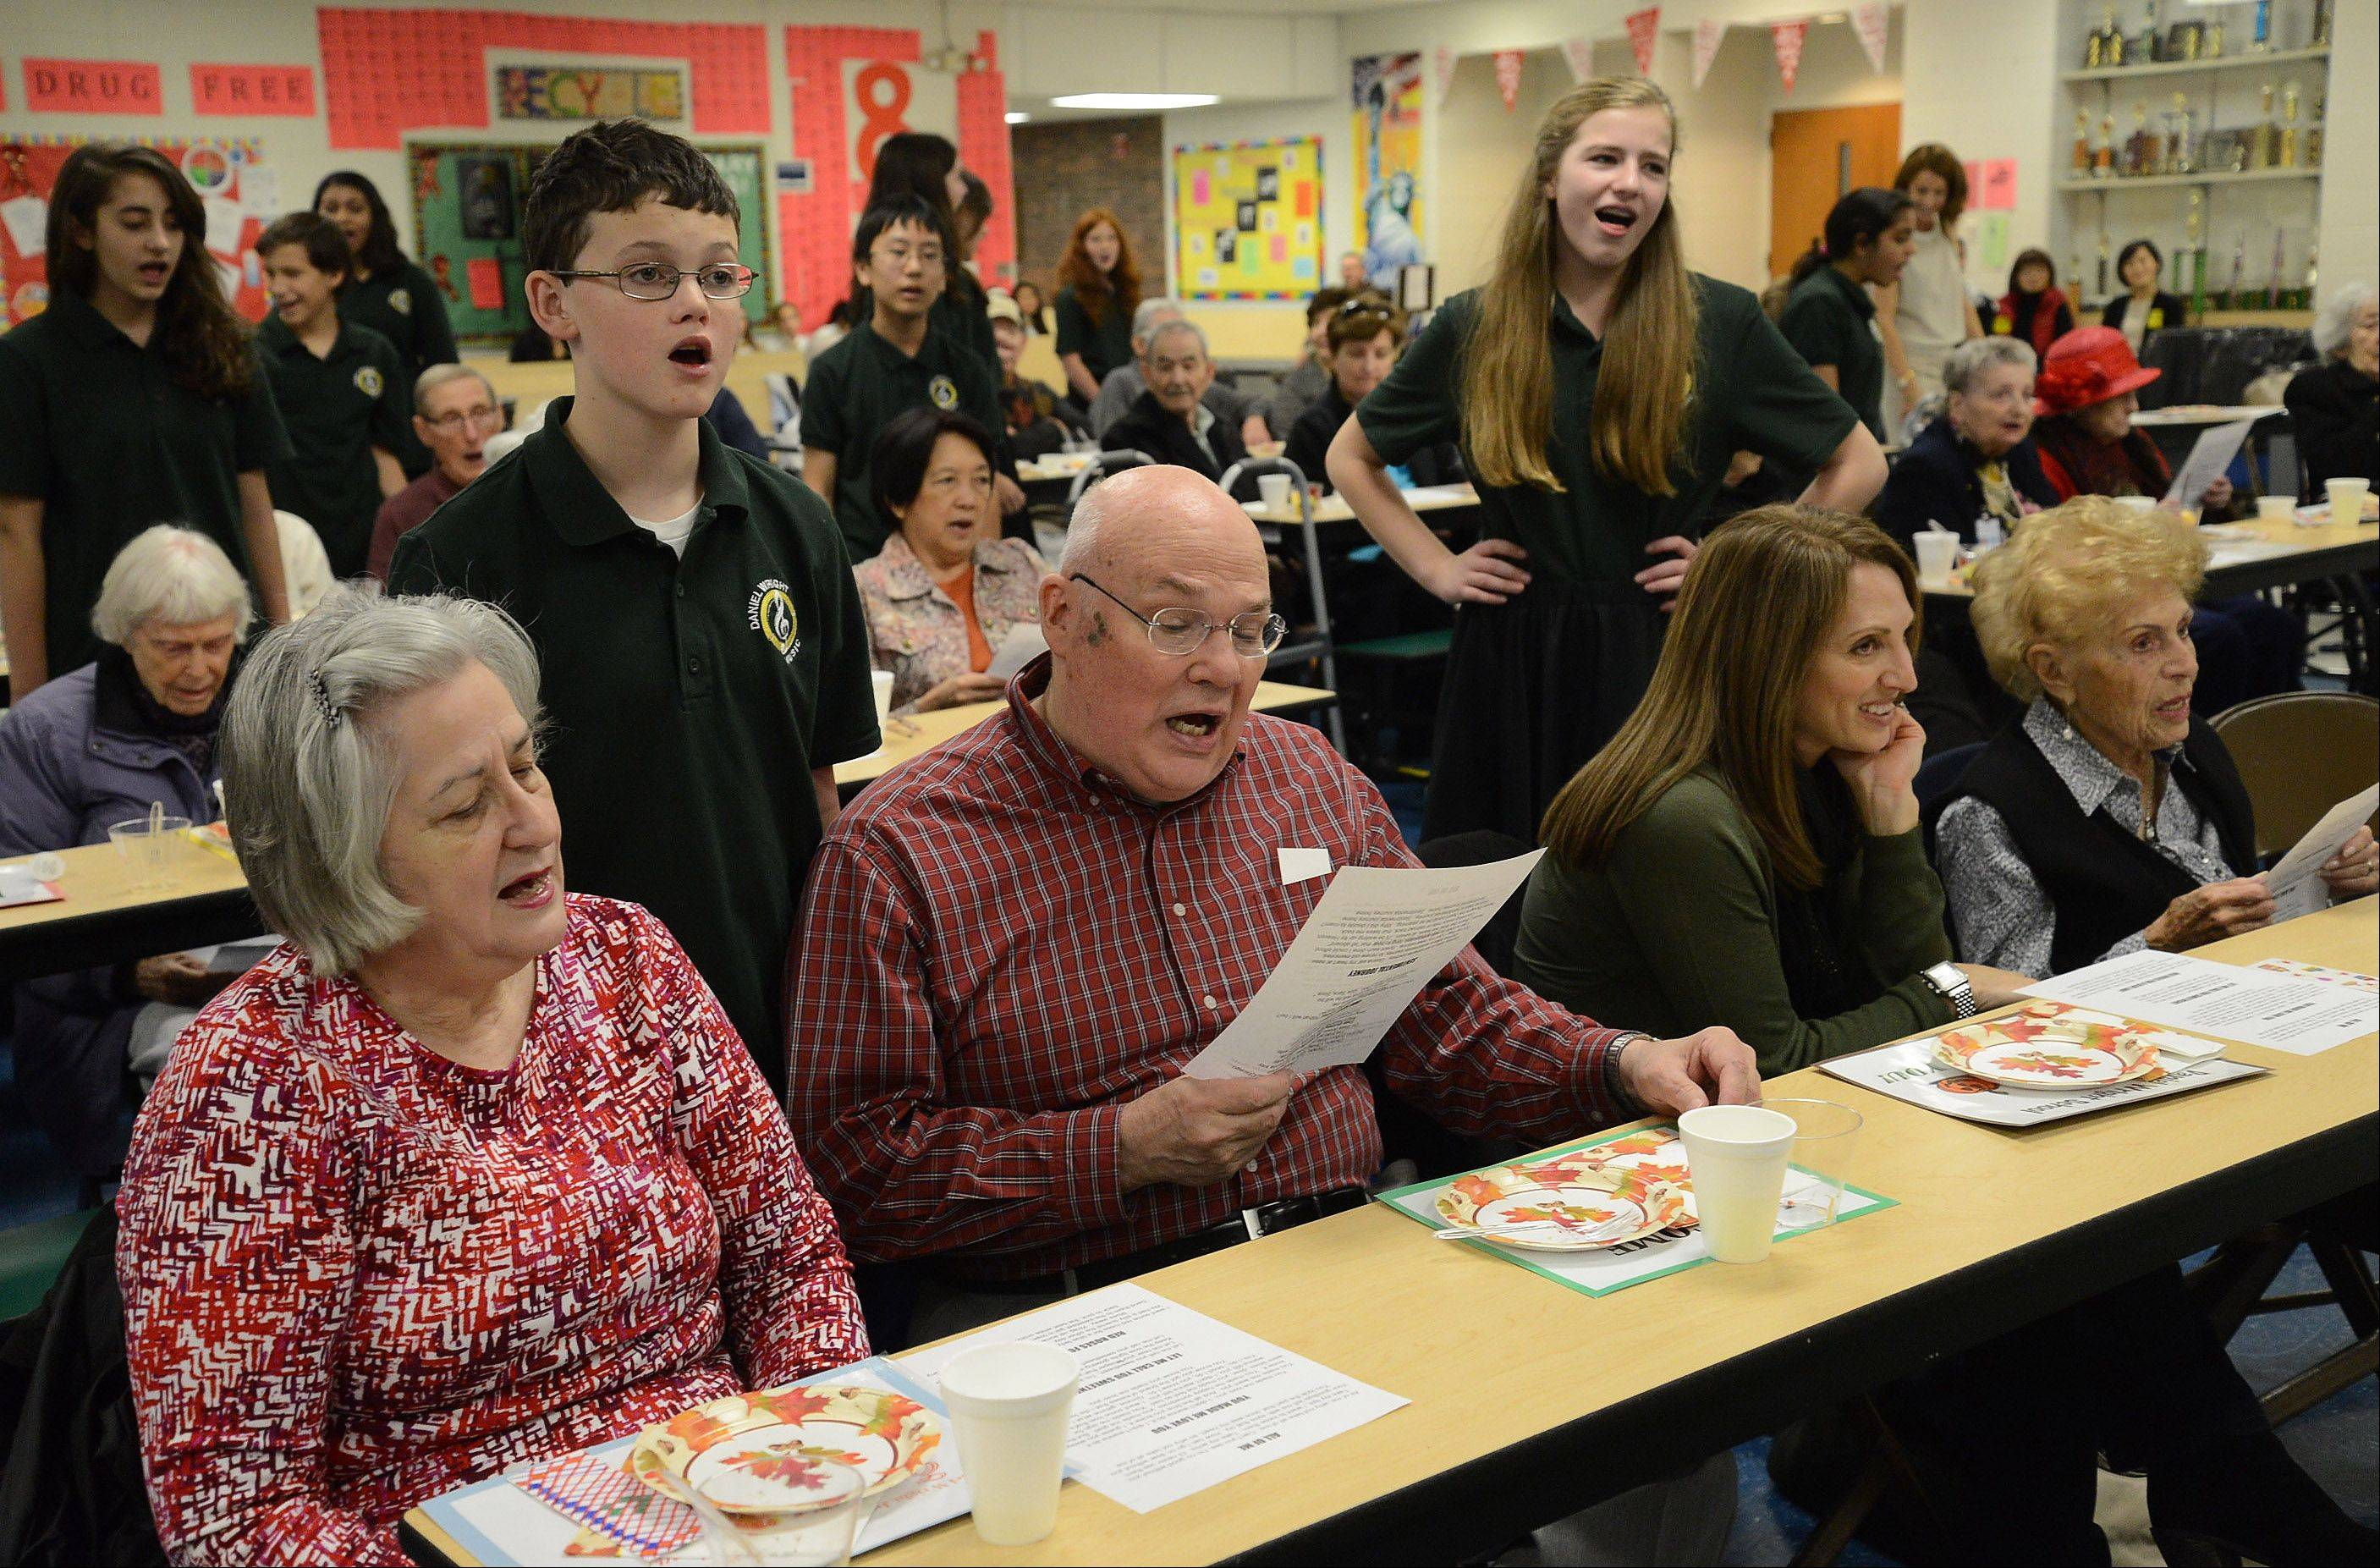 Jonathan Embree, left, joins his grand parents Tom and Connie Embree in a sing-a-long during Senior Citizens Day Tuesday at Daniel Wright Junior High in Lincolnshire.